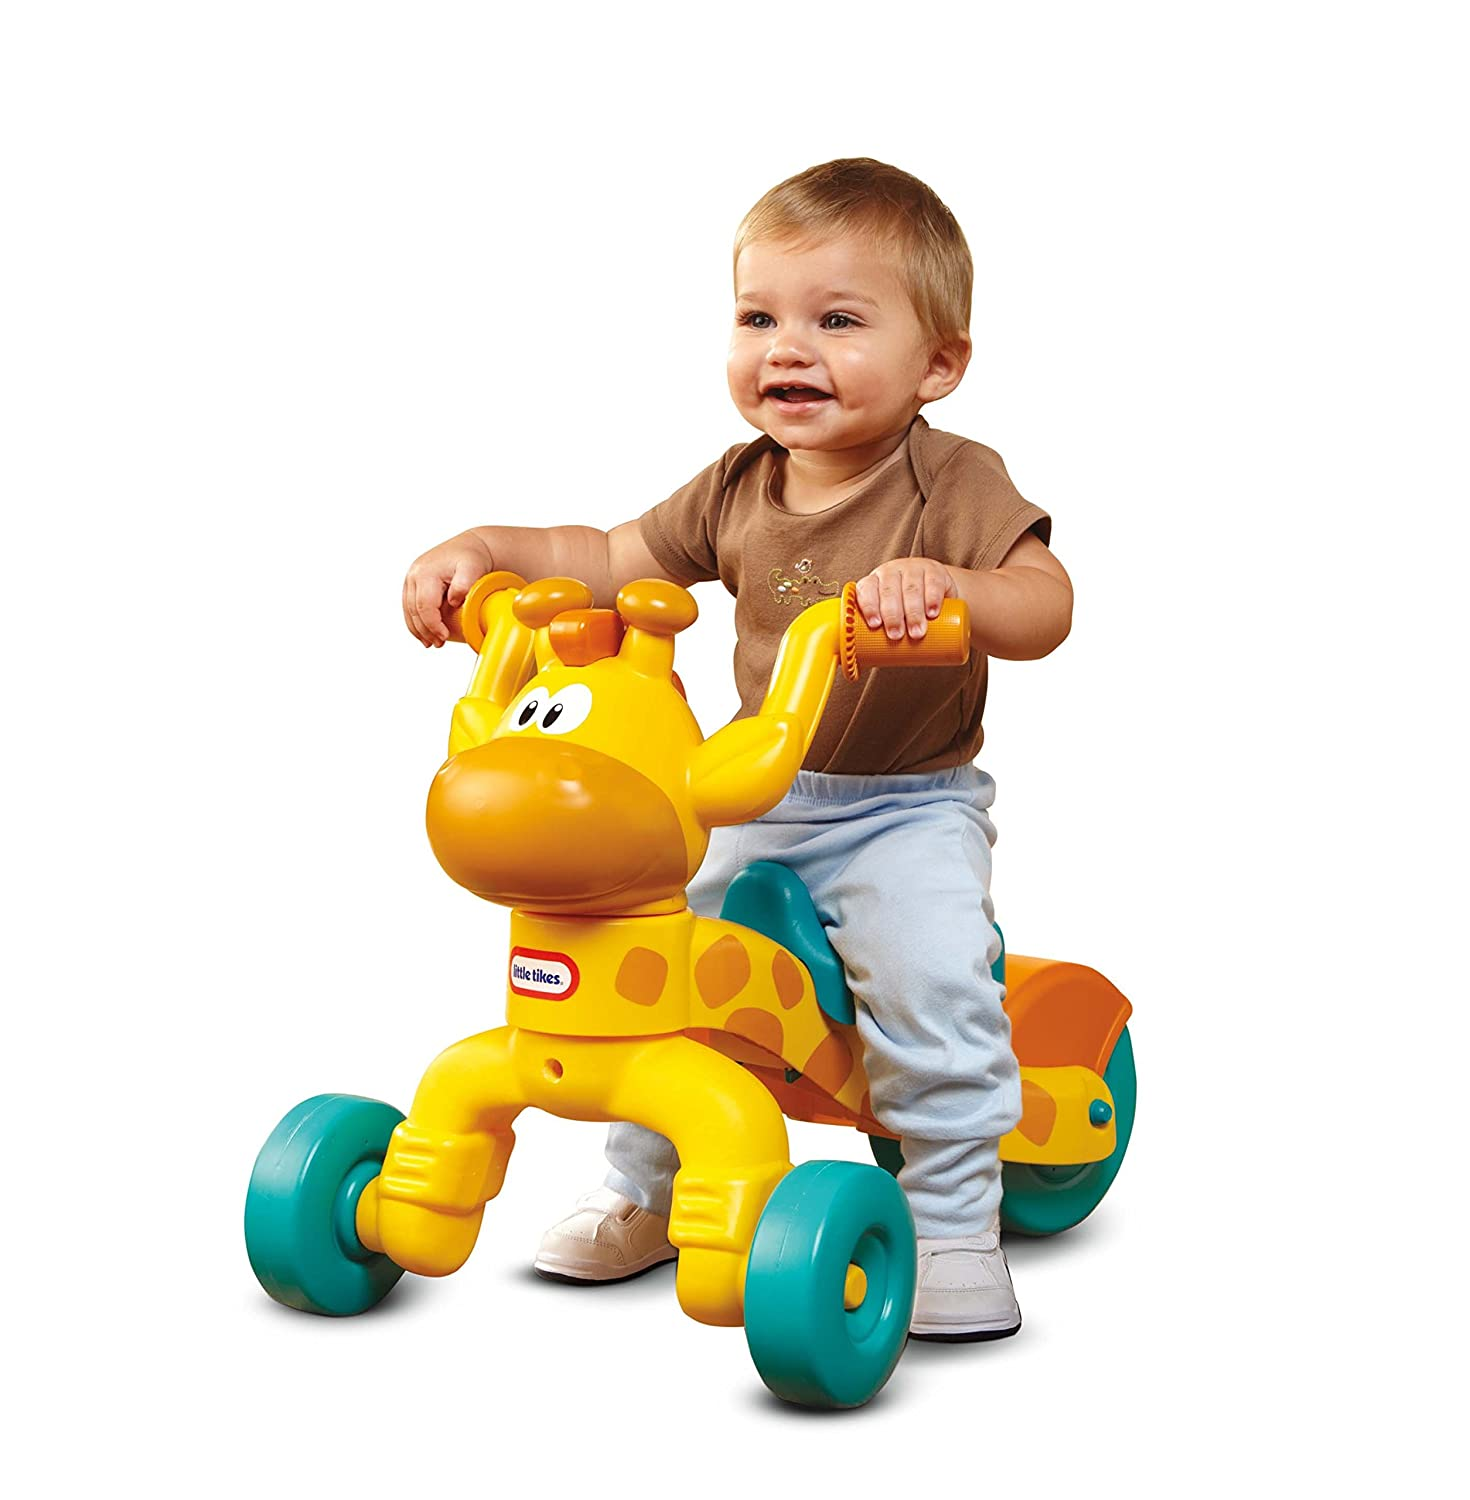 Little Tikes Rollin' Giraffe Ride-on